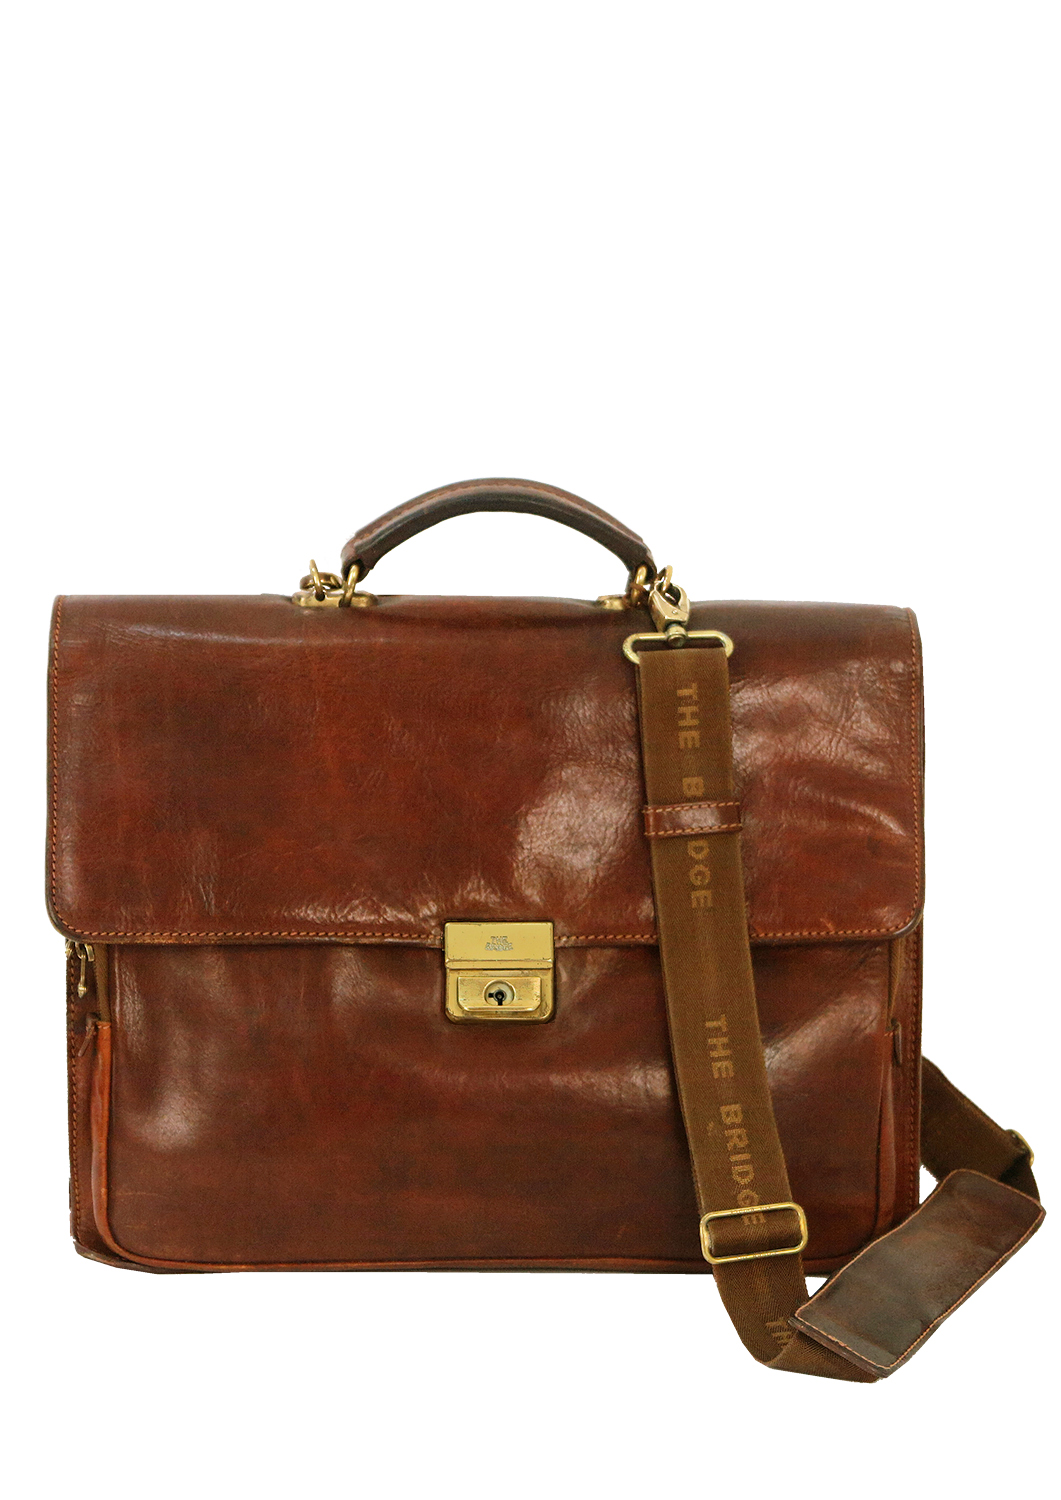 NEWHEY Mens Messenger Bag Waterproof Canvas Leather Computer Laptop Bag Inch Briefcase Case Vintage Retro Waxed Canvas Genuine Leather Large Satchel Shoulder Bag College Brown by NEWHEY $ $ 46 86 Prime.